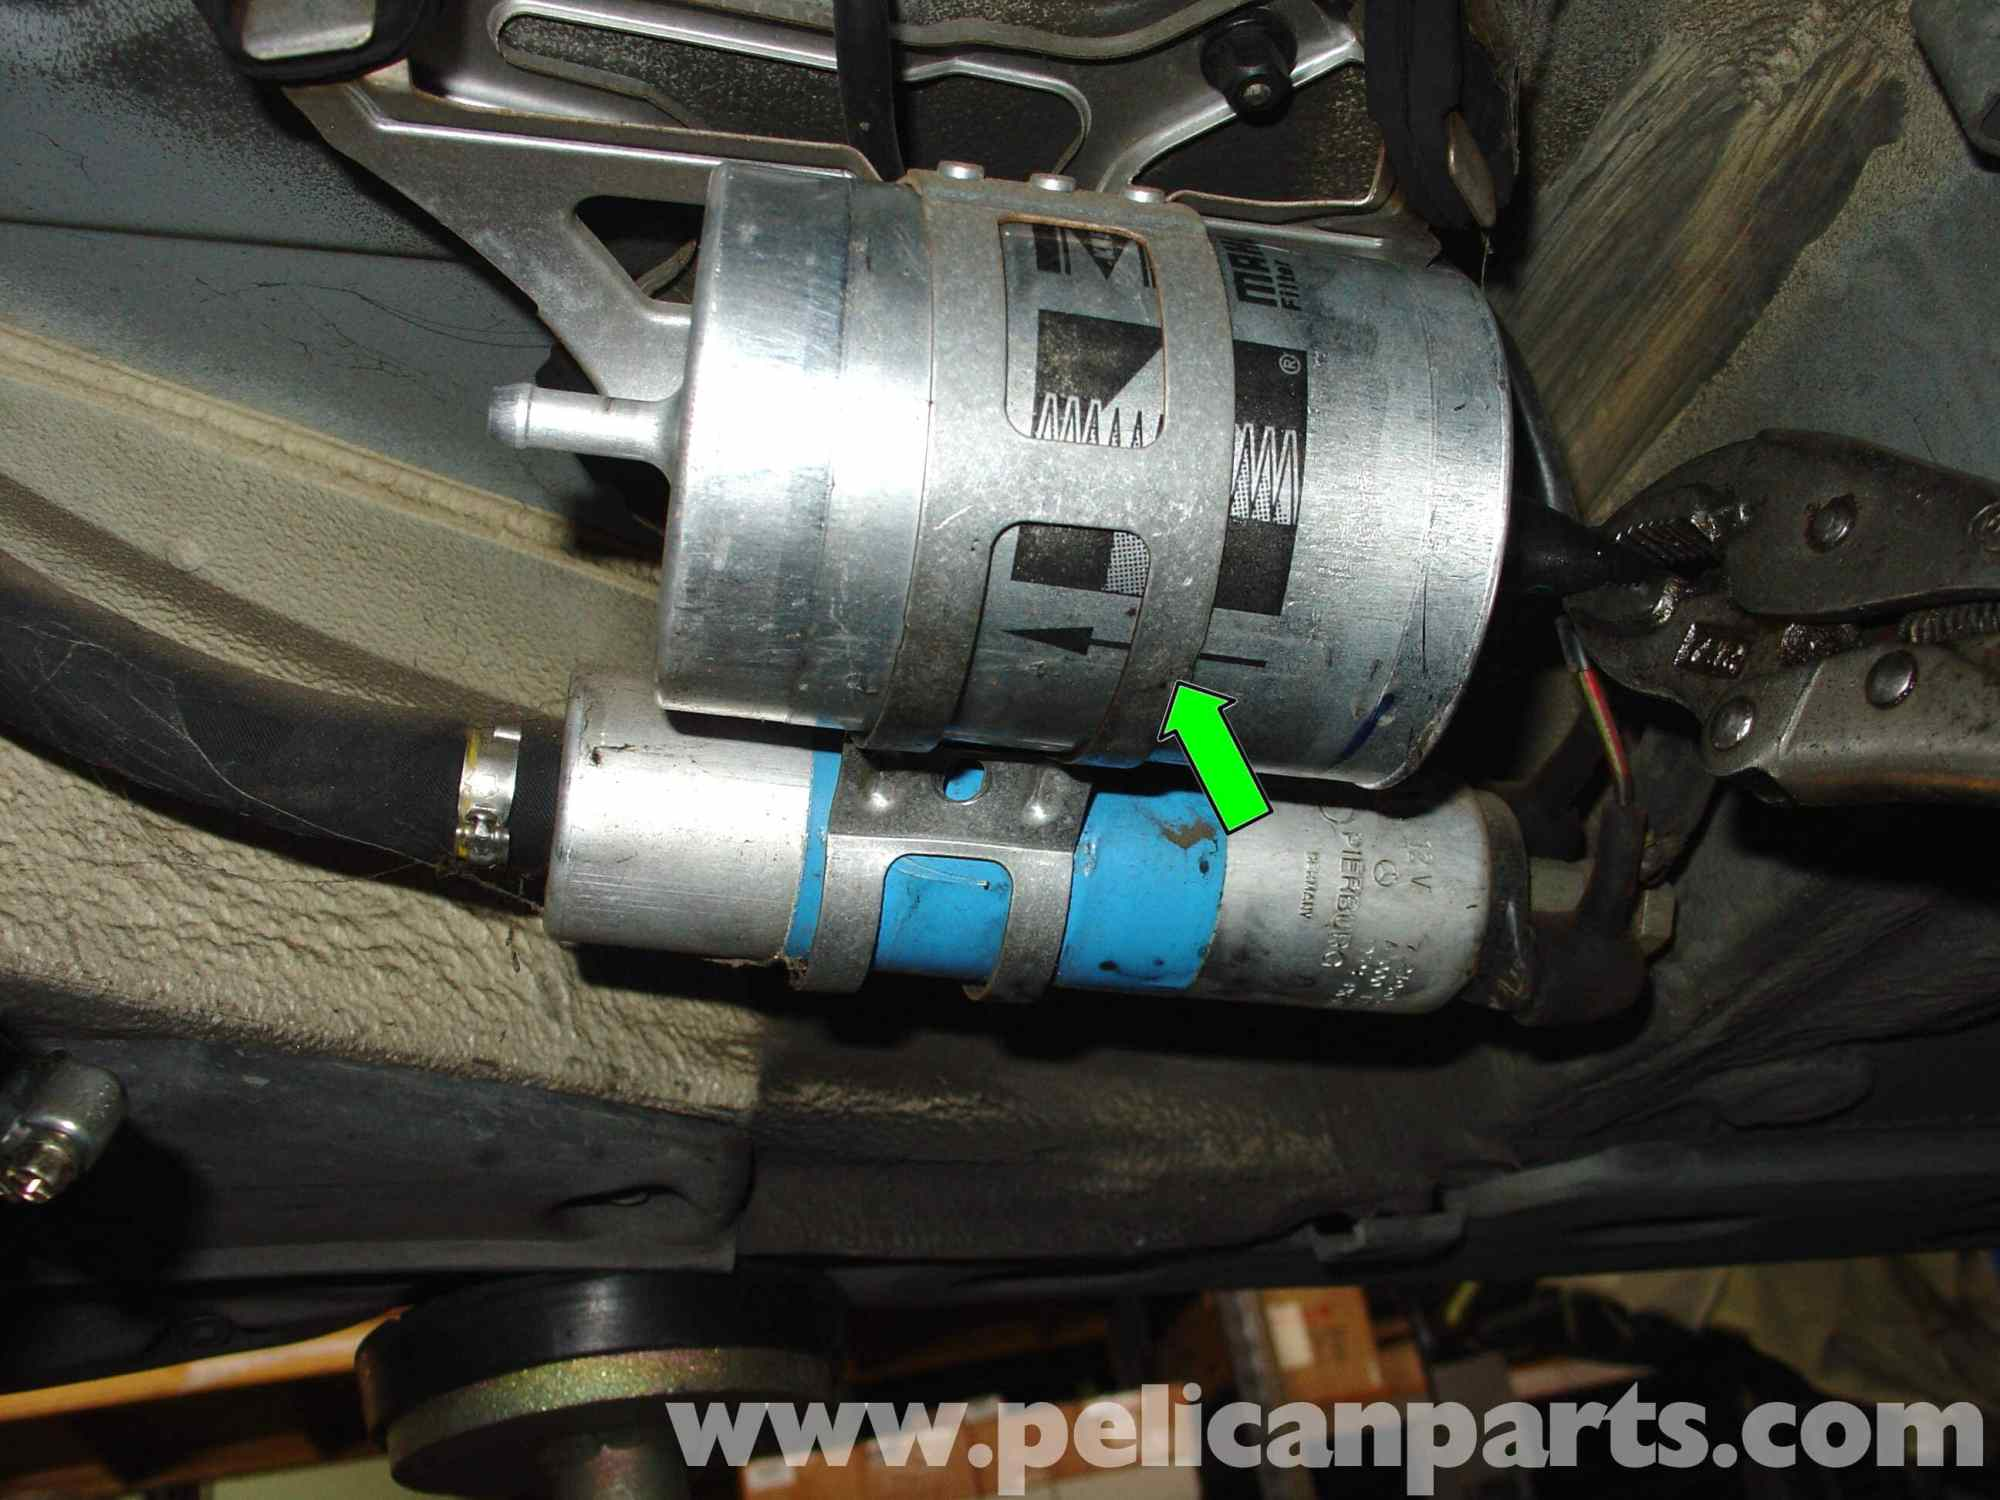 hight resolution of large image extra large image mercedes benz w210 fuel filter replacement